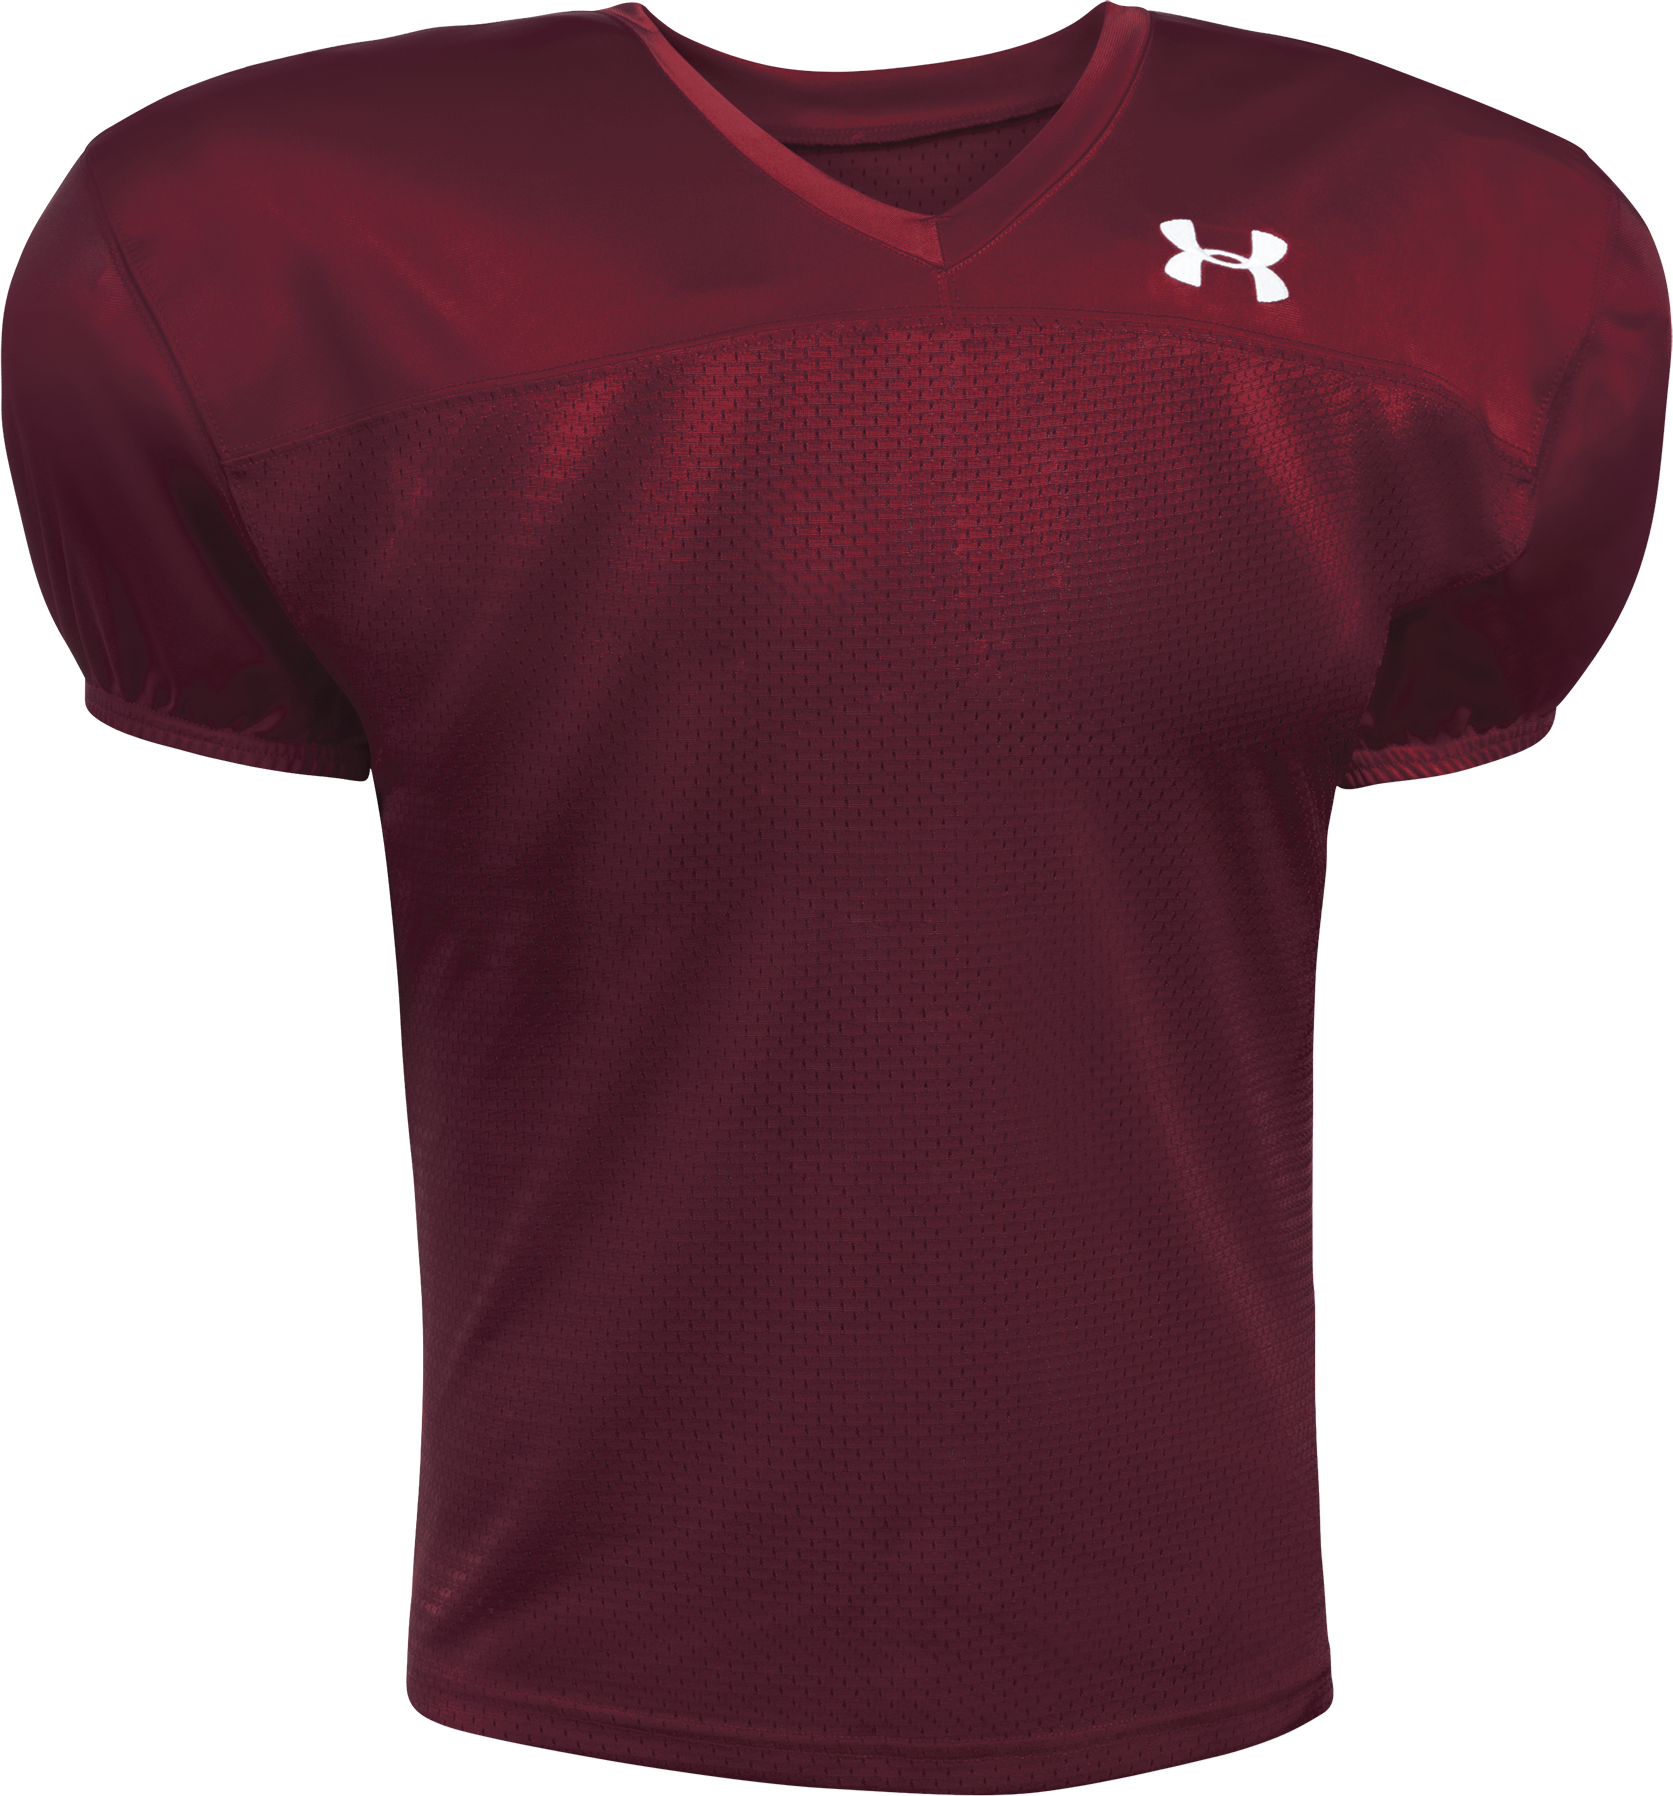 Under Armour Men's Pipeline Practice Football Jersey.